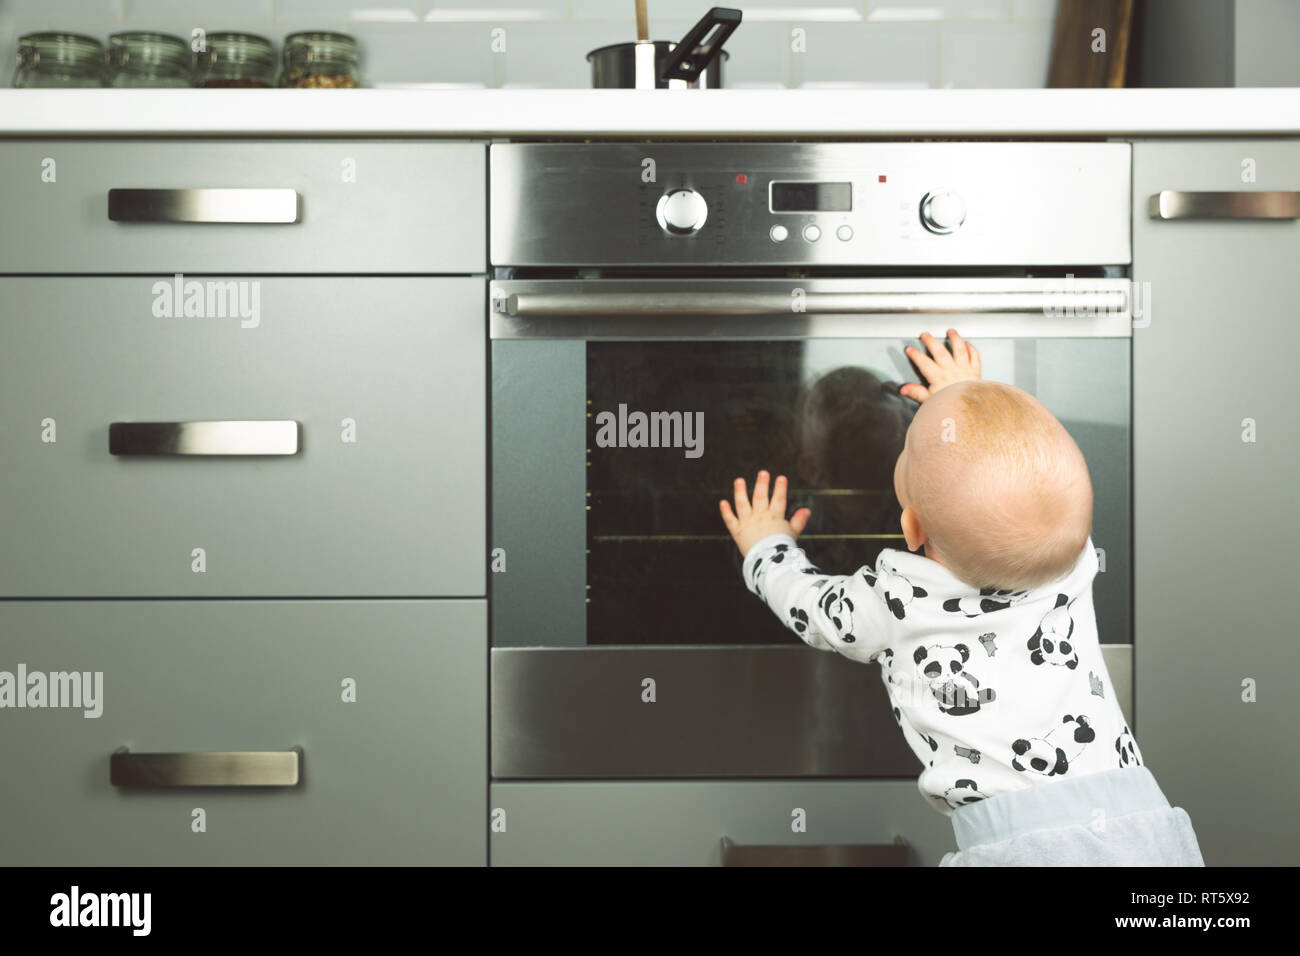 Little Child Playing With Electric Stove In The Kitchen. Baby Safety In  Kitchen